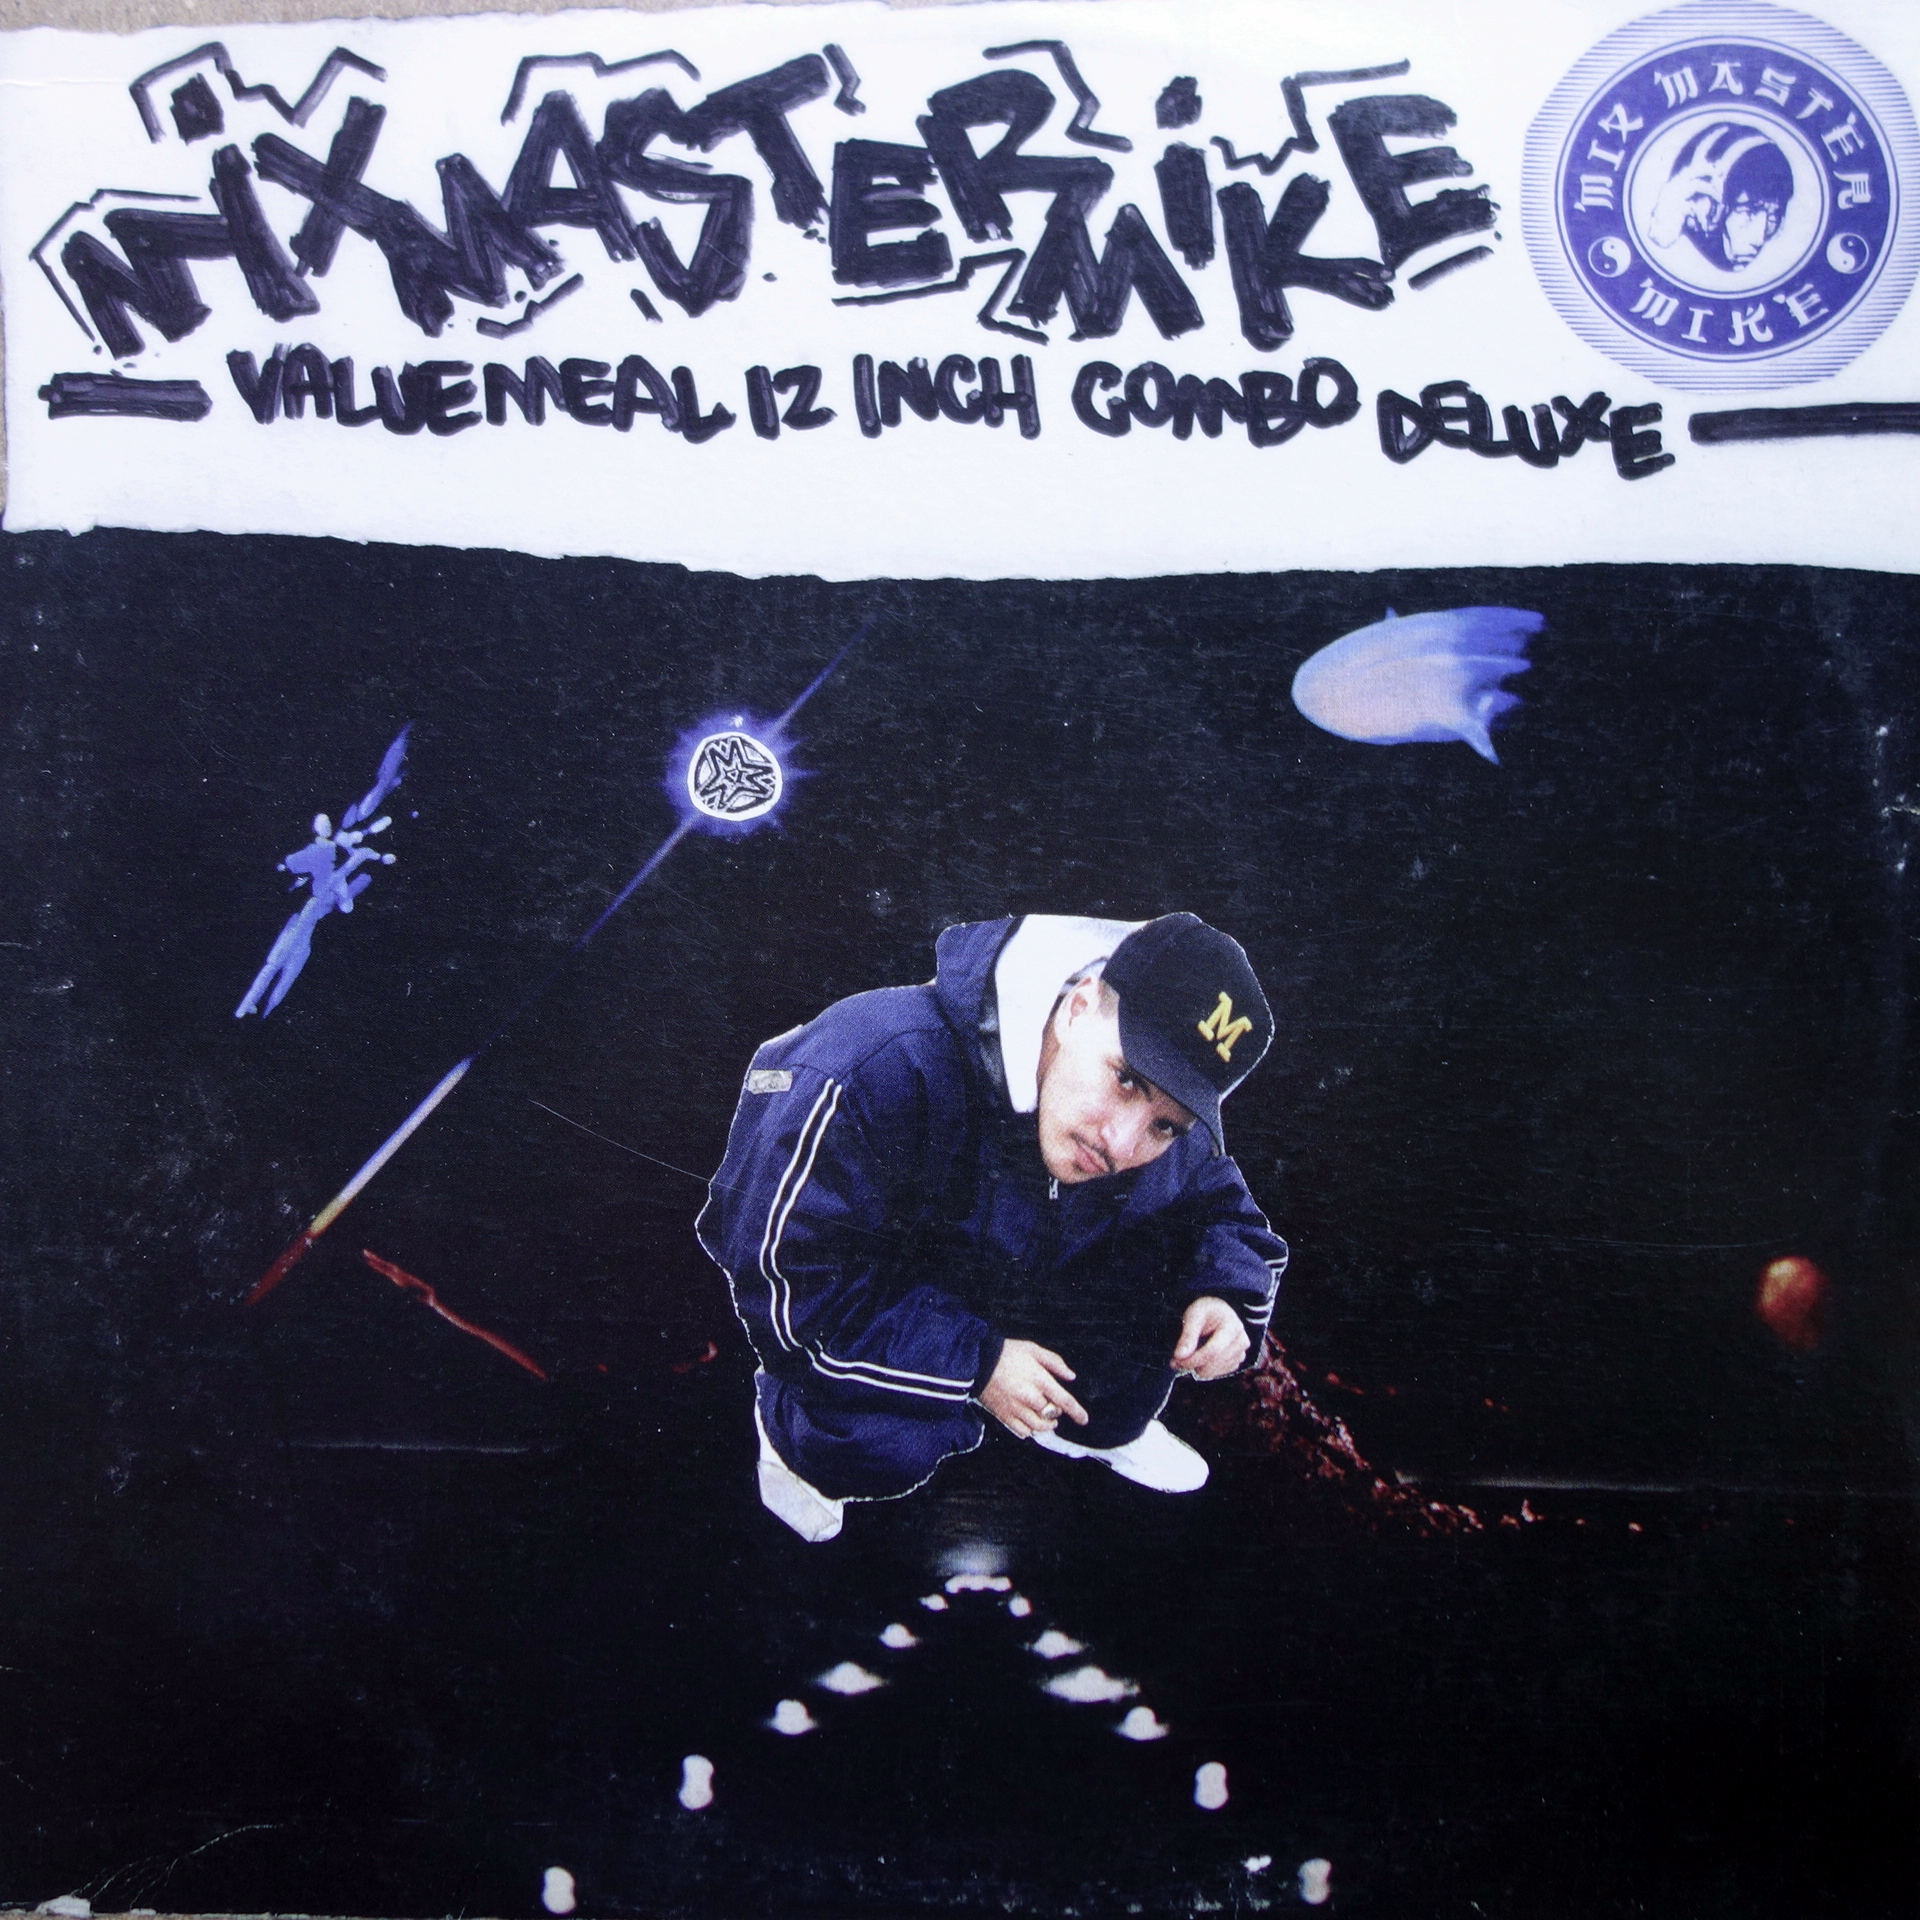 "12"" Mix Master Mike ‎– Valuemeal 12 Inch Combo Deluxe"